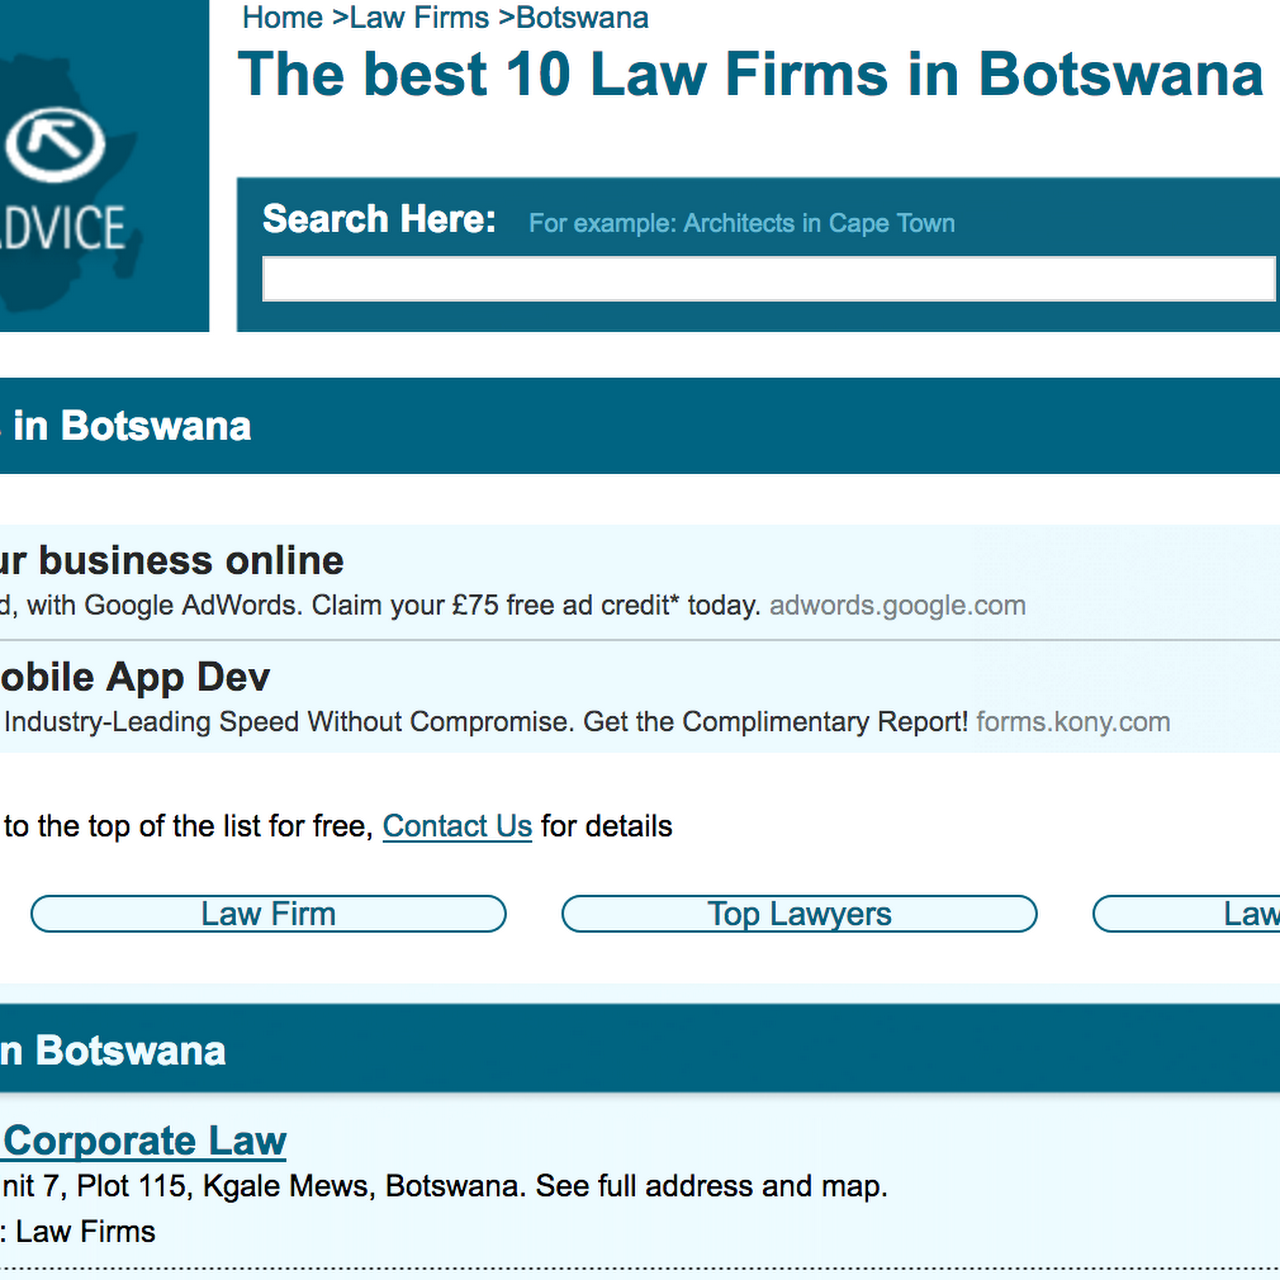 Bewlay Corporate Law - COMMERCIAL LAW FIRM IN GABORONE